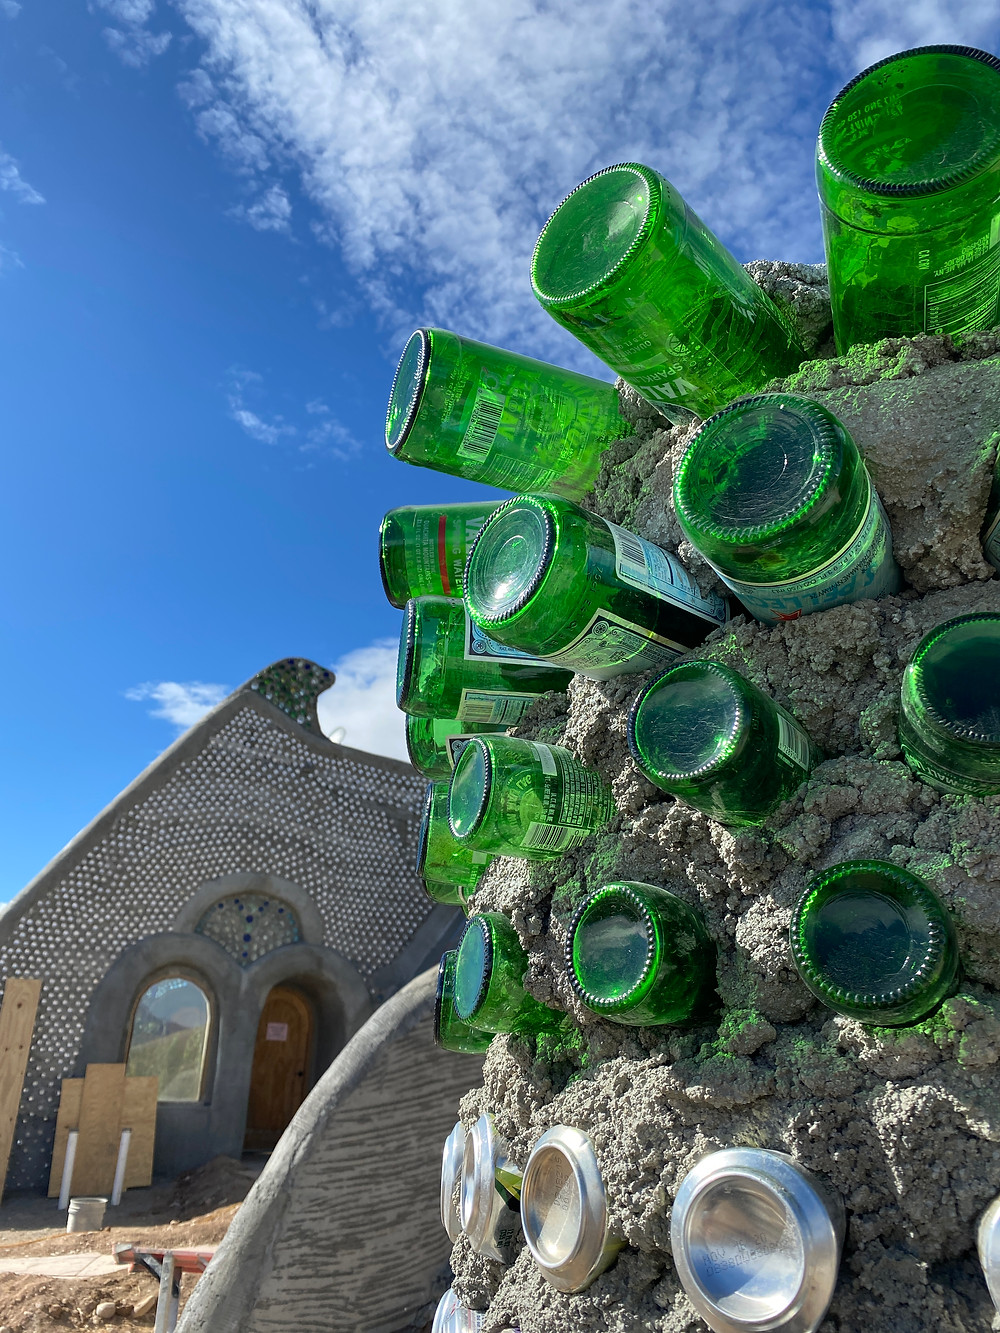 Earthship bottles and cans foundation - Image from eartshipbiotecture.com